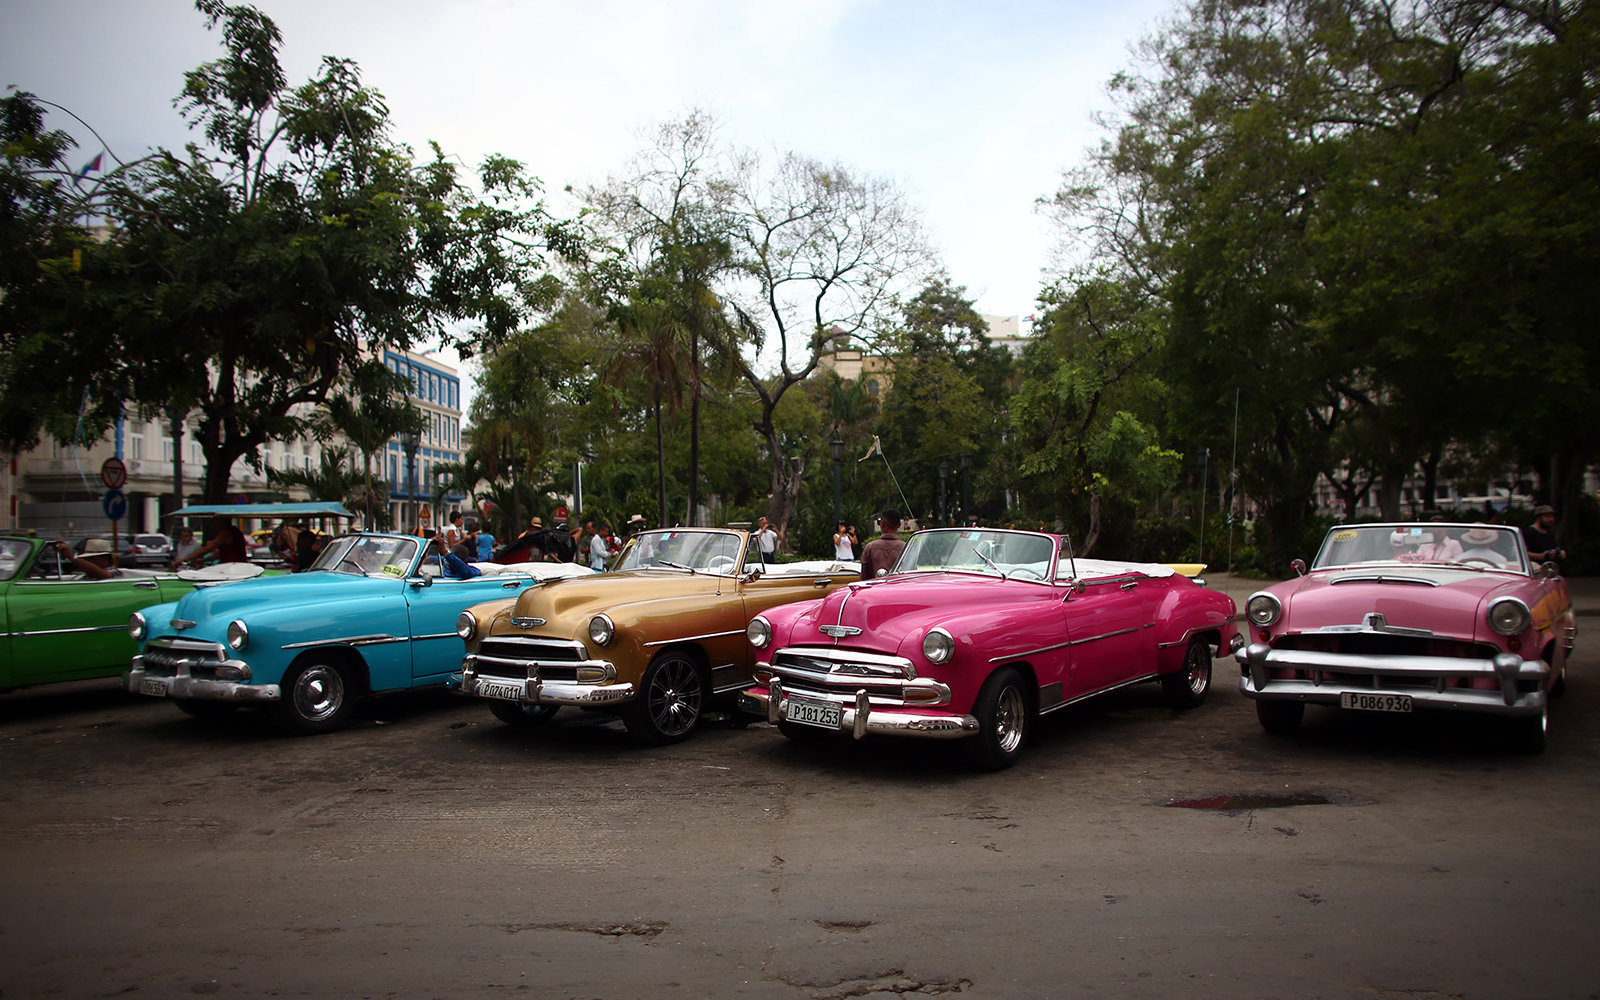 HAVANA, CUBA - SEPTEMBER 16:  Vintage American cars being used as tourist taxis are parked alongside each other as drivers wait for customers on September 16, 2015 in Havana, Cuba.  Pope Francis is due to make a three day visit to Cuba from September 19 w